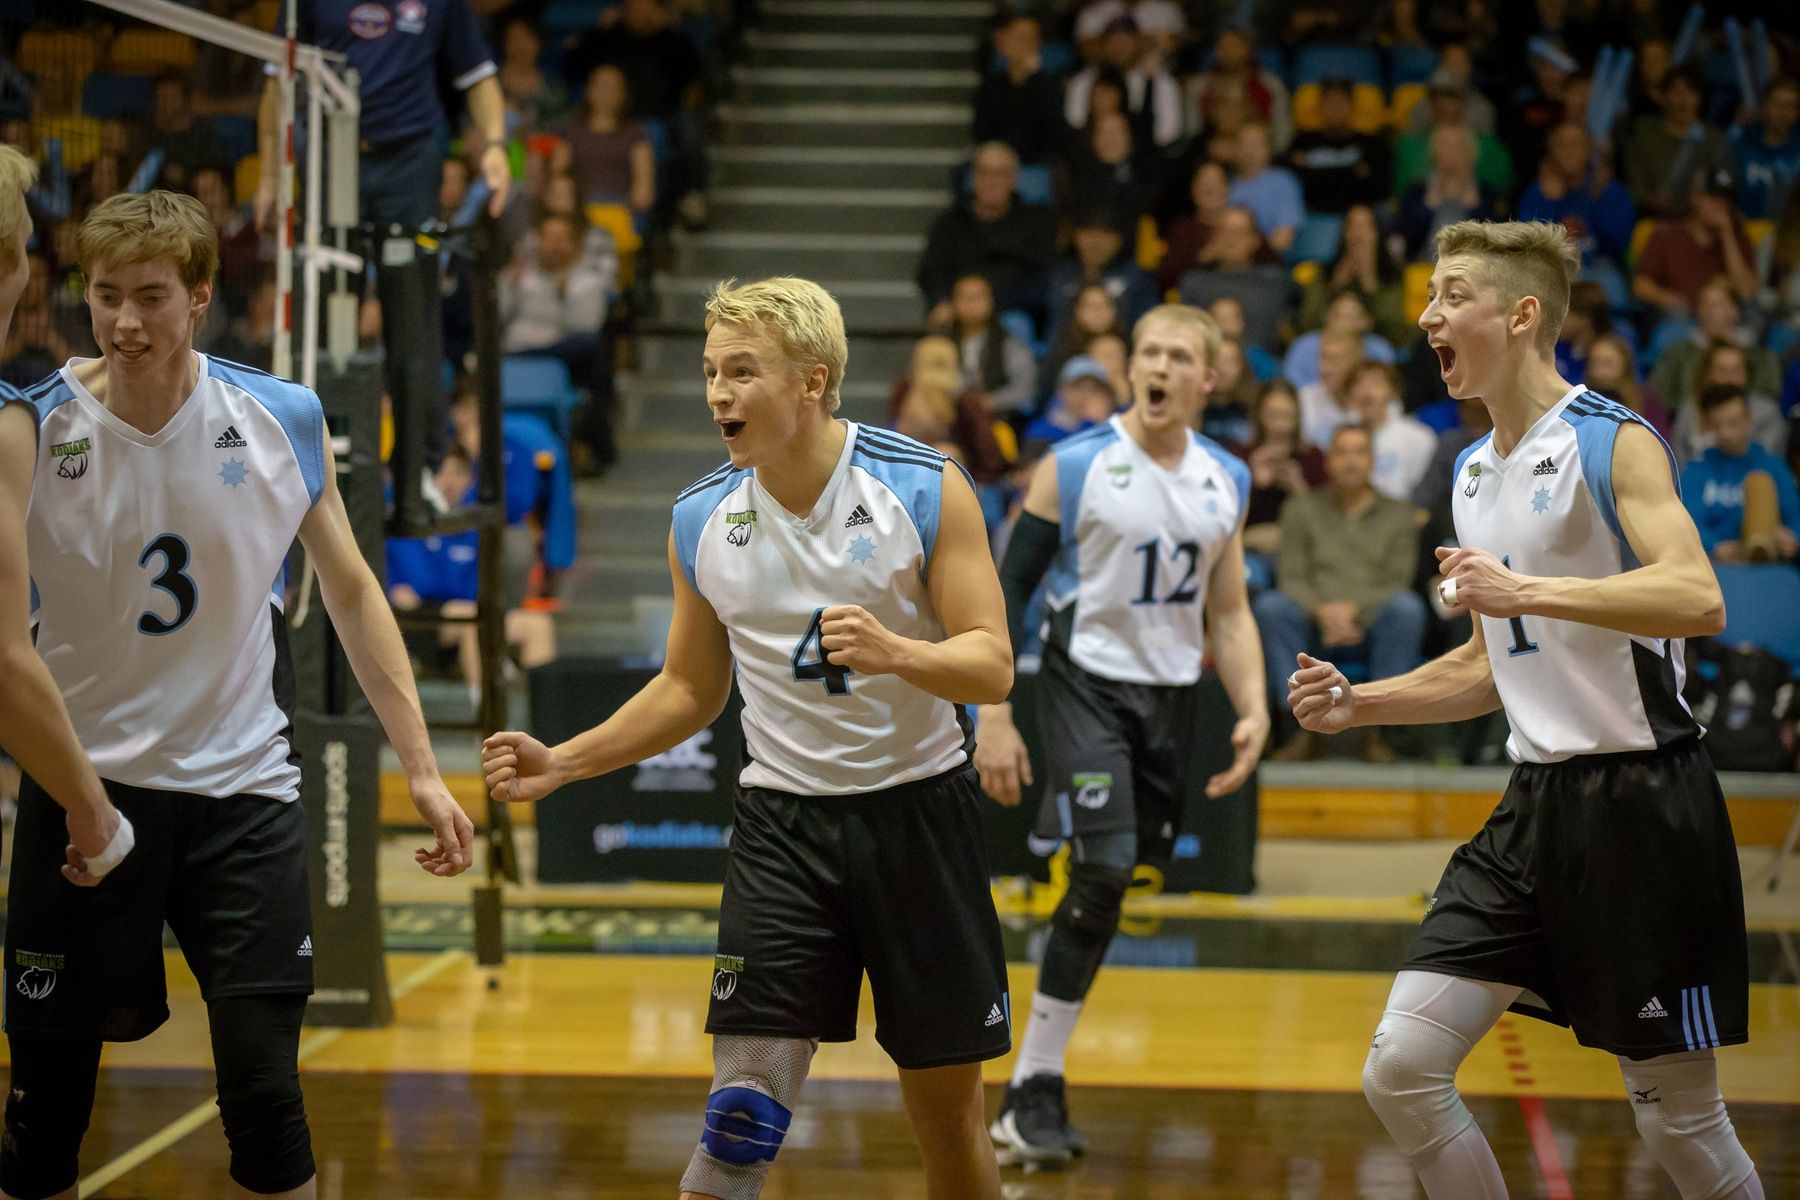 MVB | Kodiaks Take Down Clippers